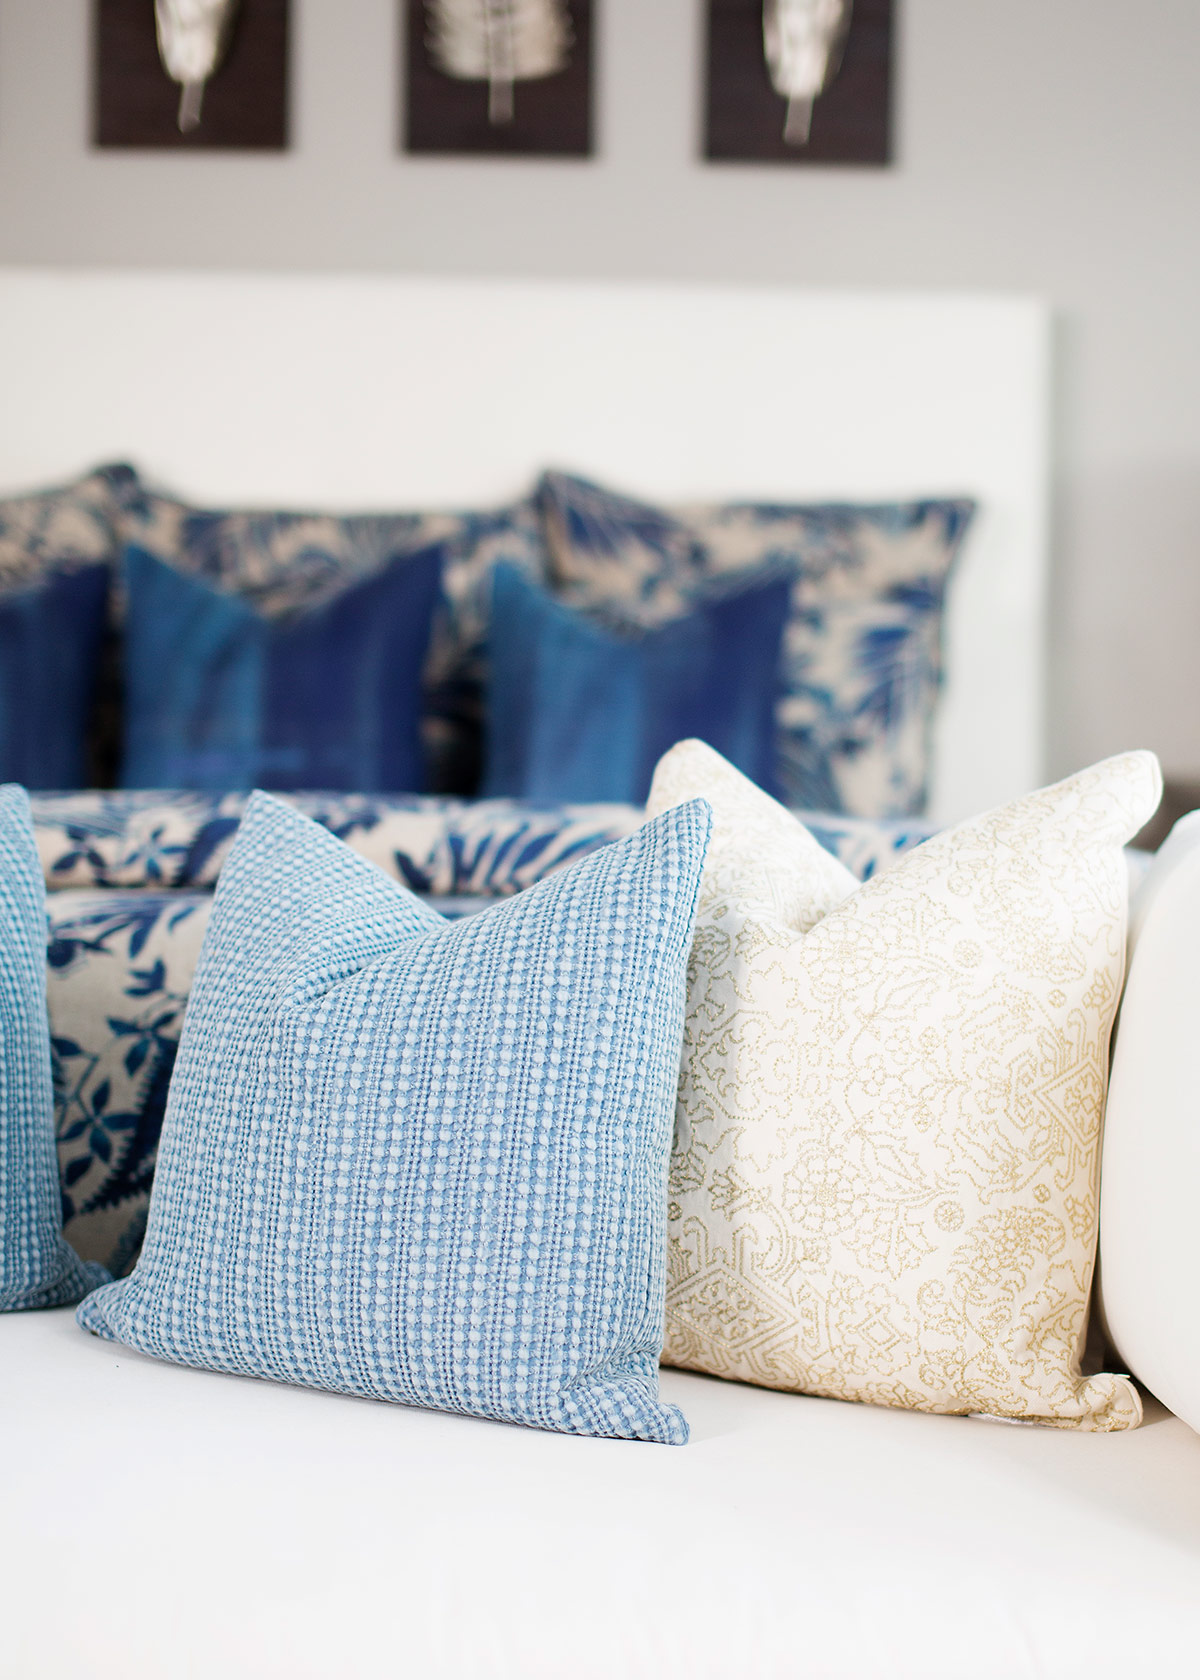 Throw pillows on chaise at foot of bed